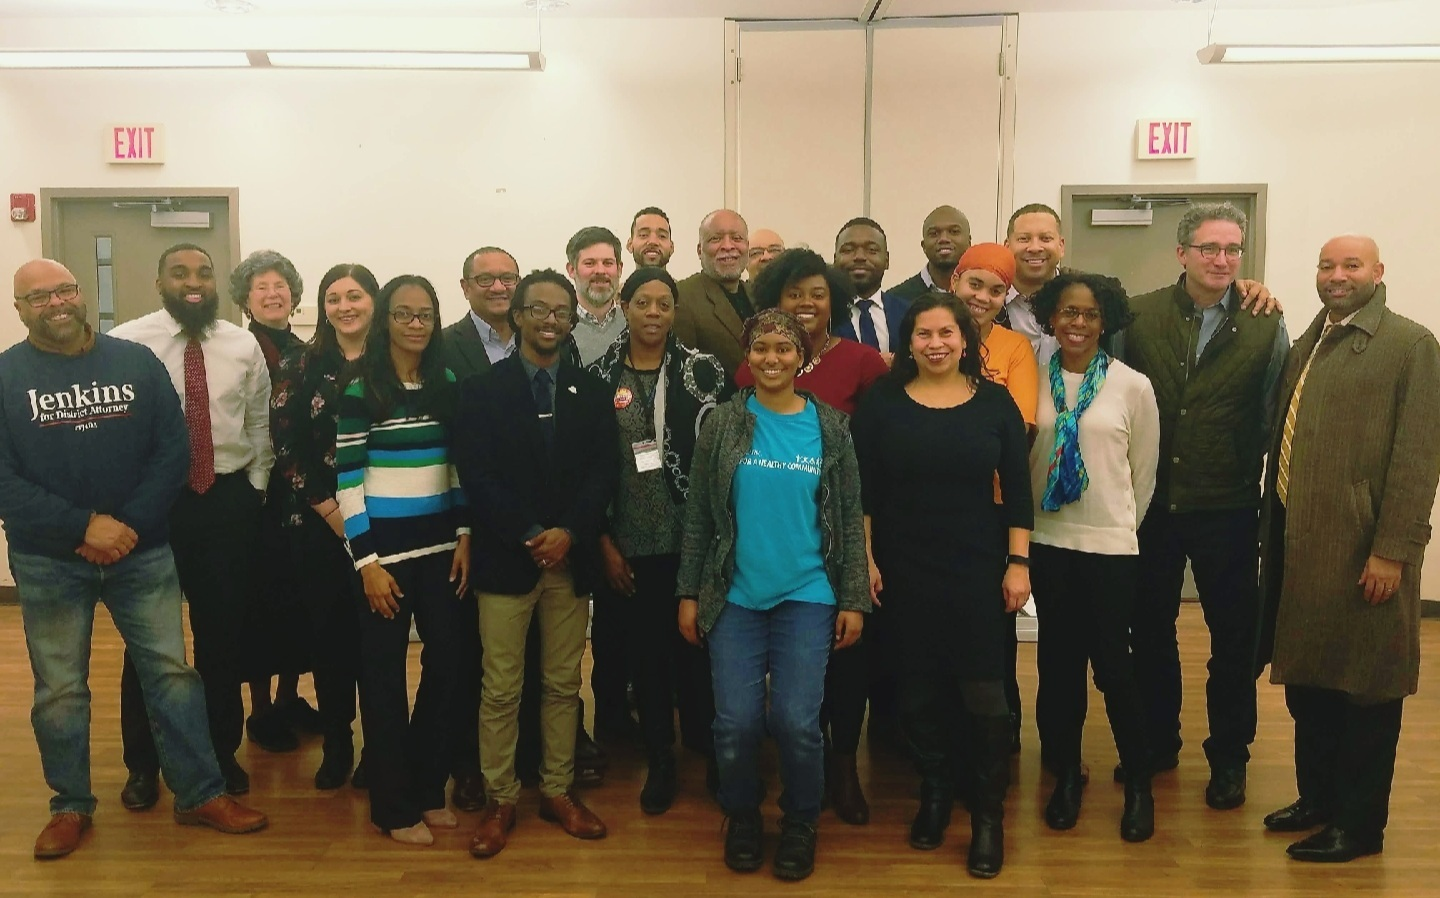 The 2018 All-In-Pittsburgh cohort